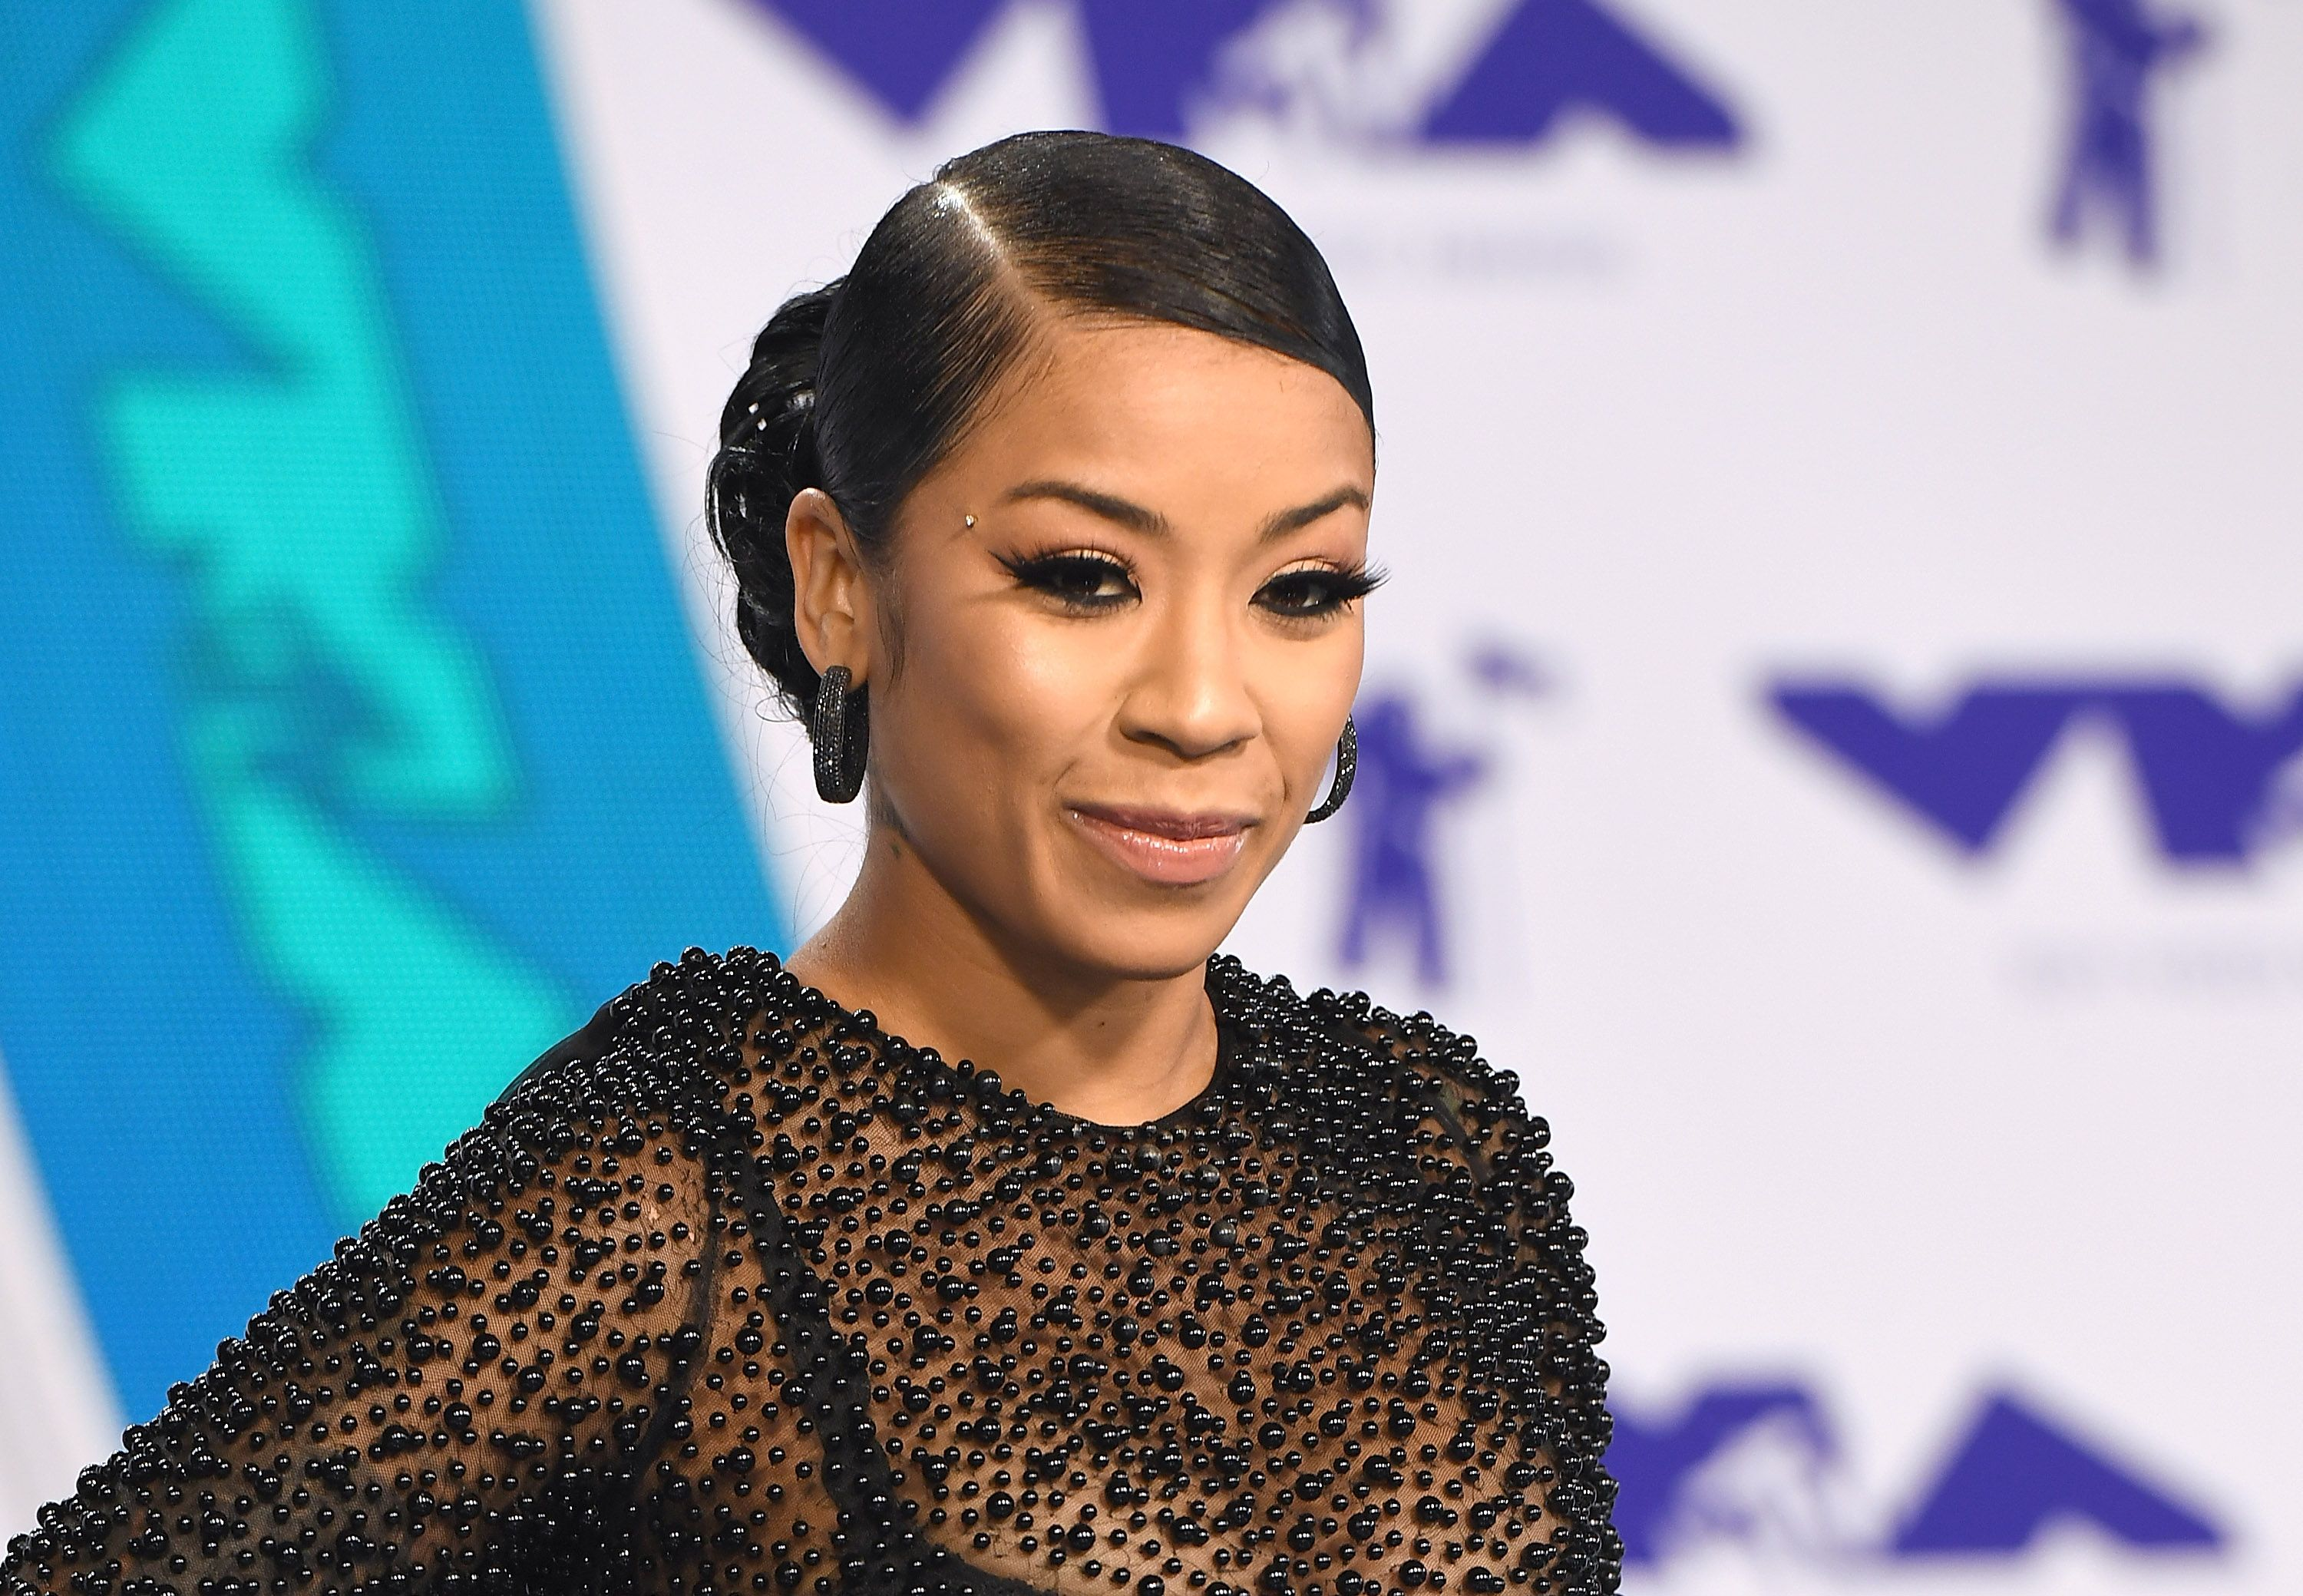 Keyshia Cole at the 2017 MTV Video Music Awards on Aug. 27, 2017 in California   Photo: Getty Images